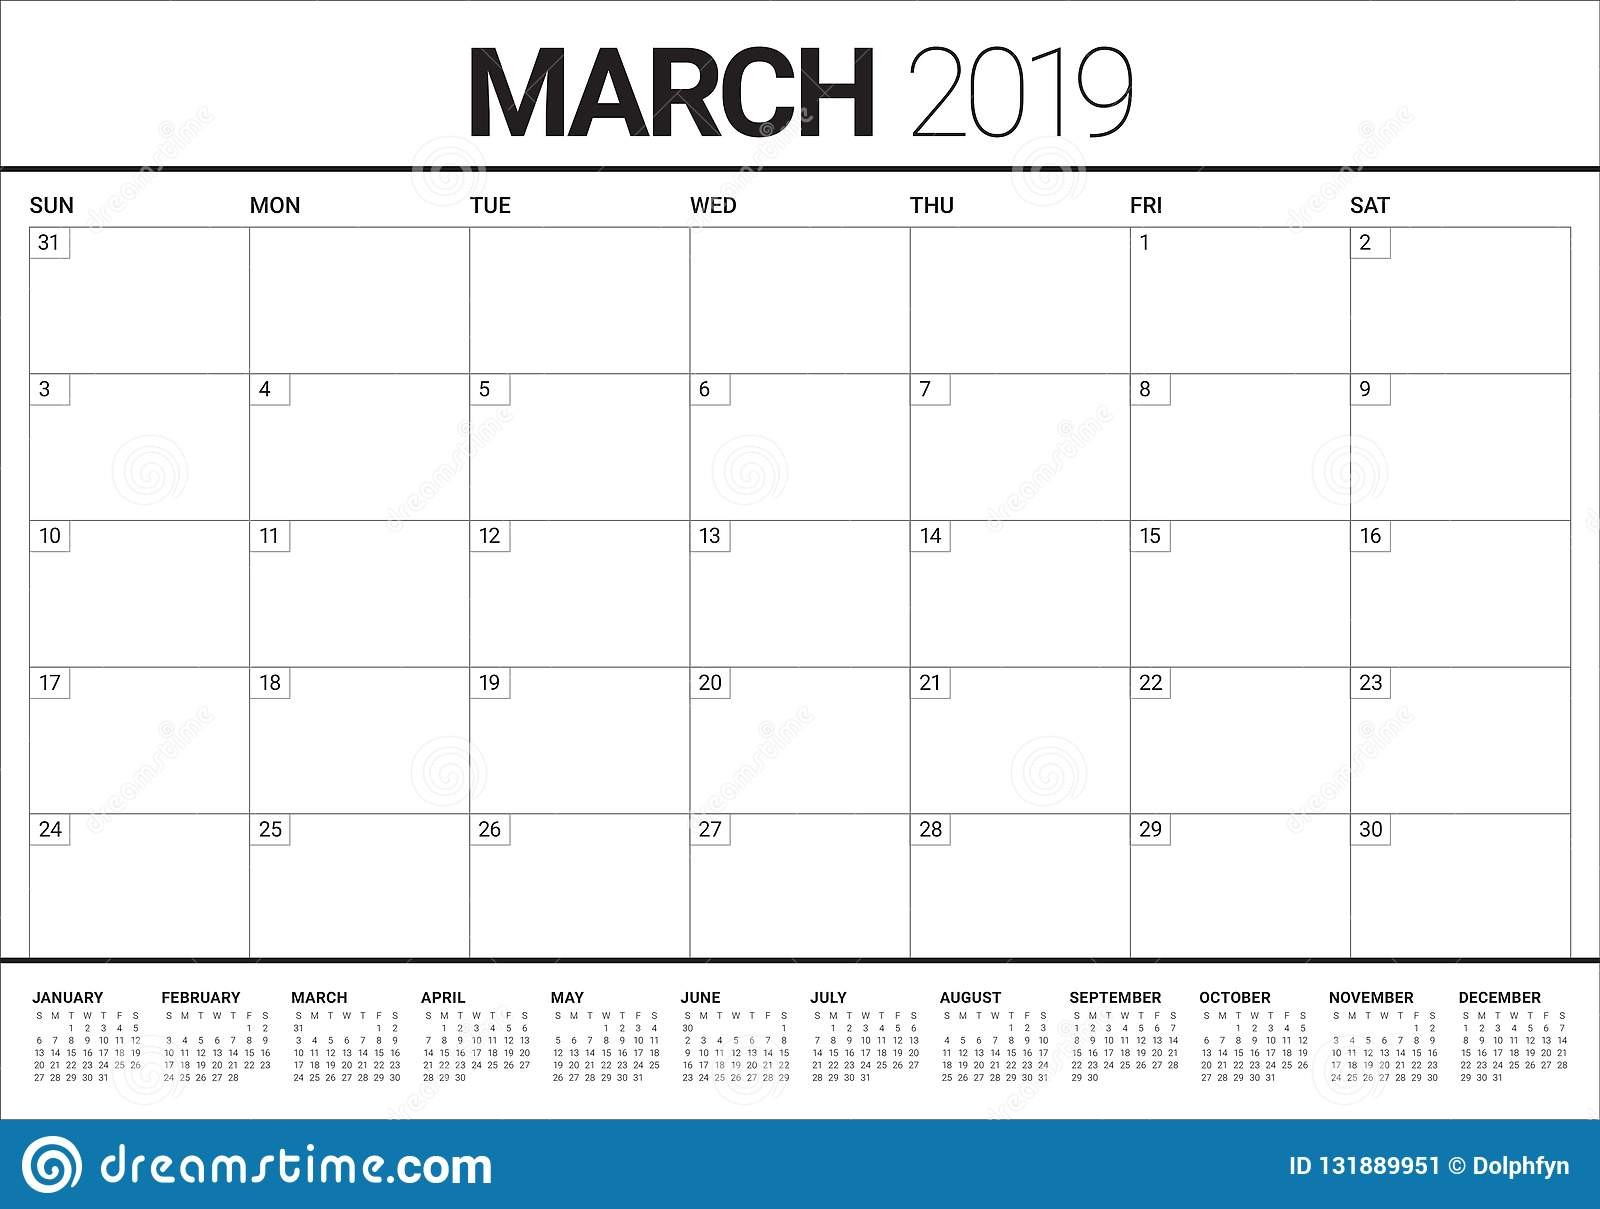 March Calendar 2019 Más Recientemente Liberado March 2019 Desk Calendar Vector Illustration Stock Vector Of March Calendar 2019 Más Populares February March Calendar 2019 2018 Printable Calendar Store